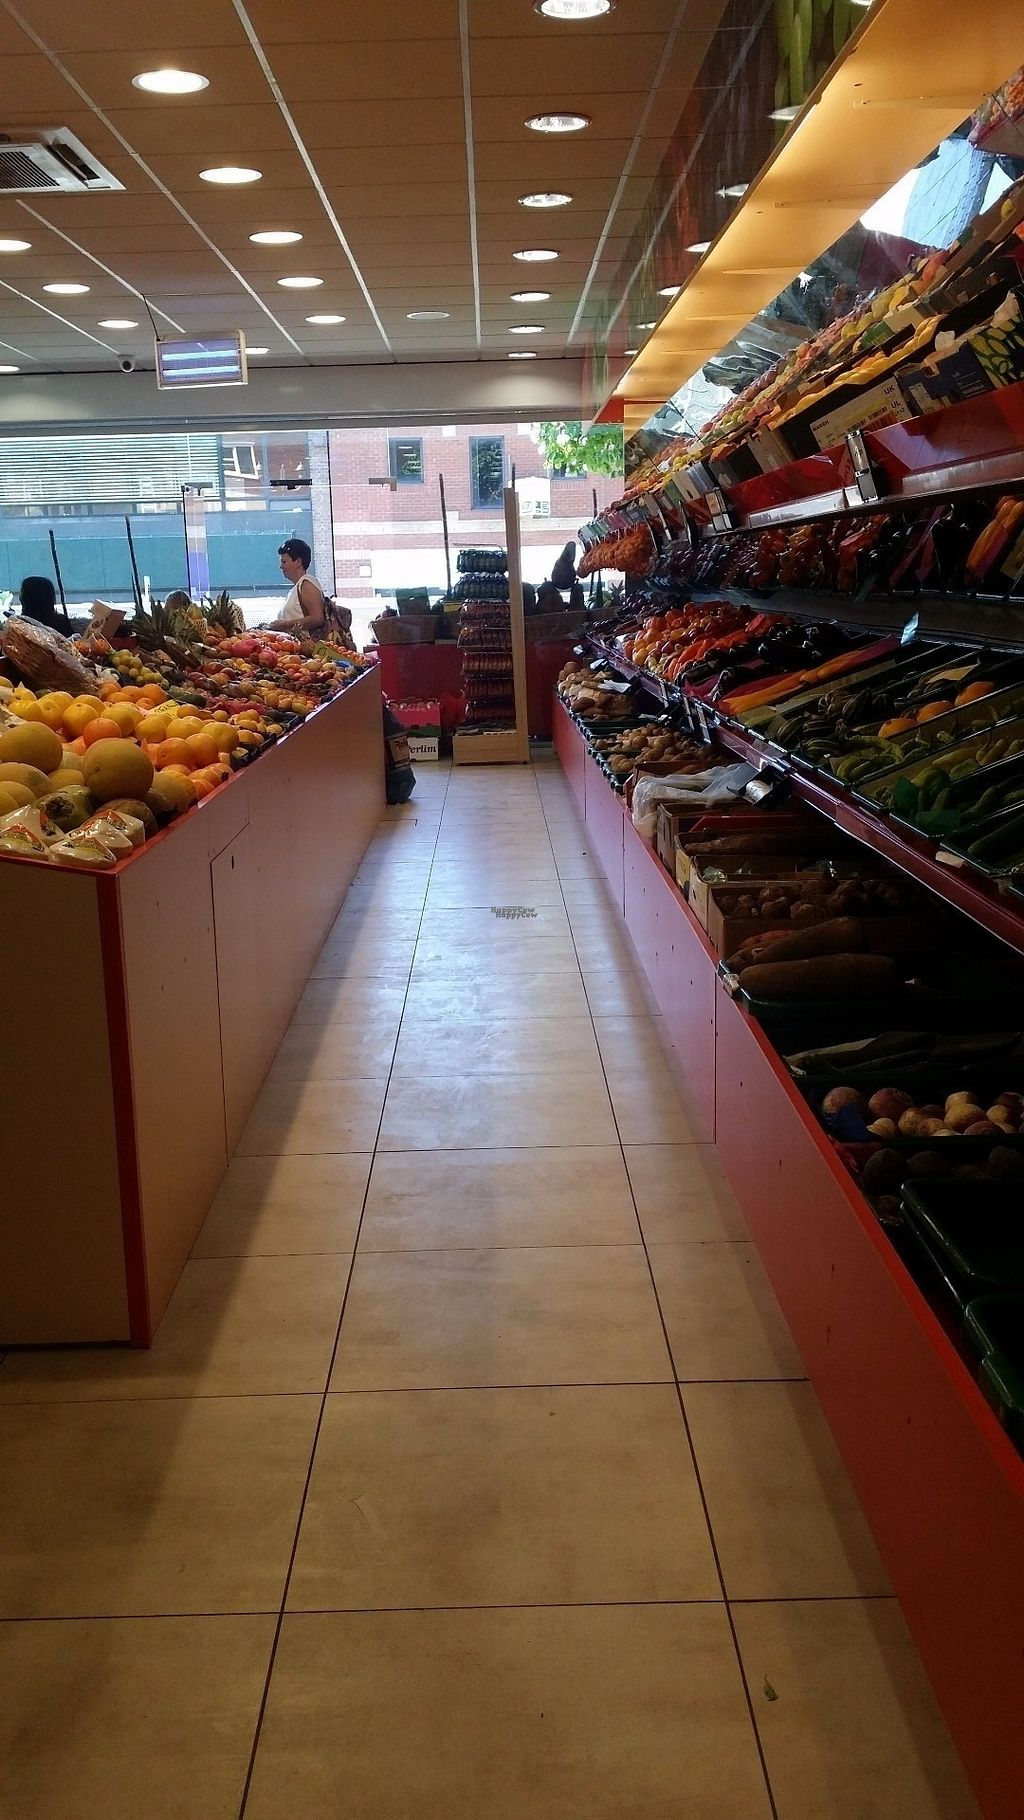 """Photo of CLOSED: Fruit Garden  by <a href=""""/members/profile/roguesby"""">roguesby</a> <br/>Tons of fruit and veg! <br/> August 26, 2016  - <a href='/contact/abuse/image/79138/171518'>Report</a>"""